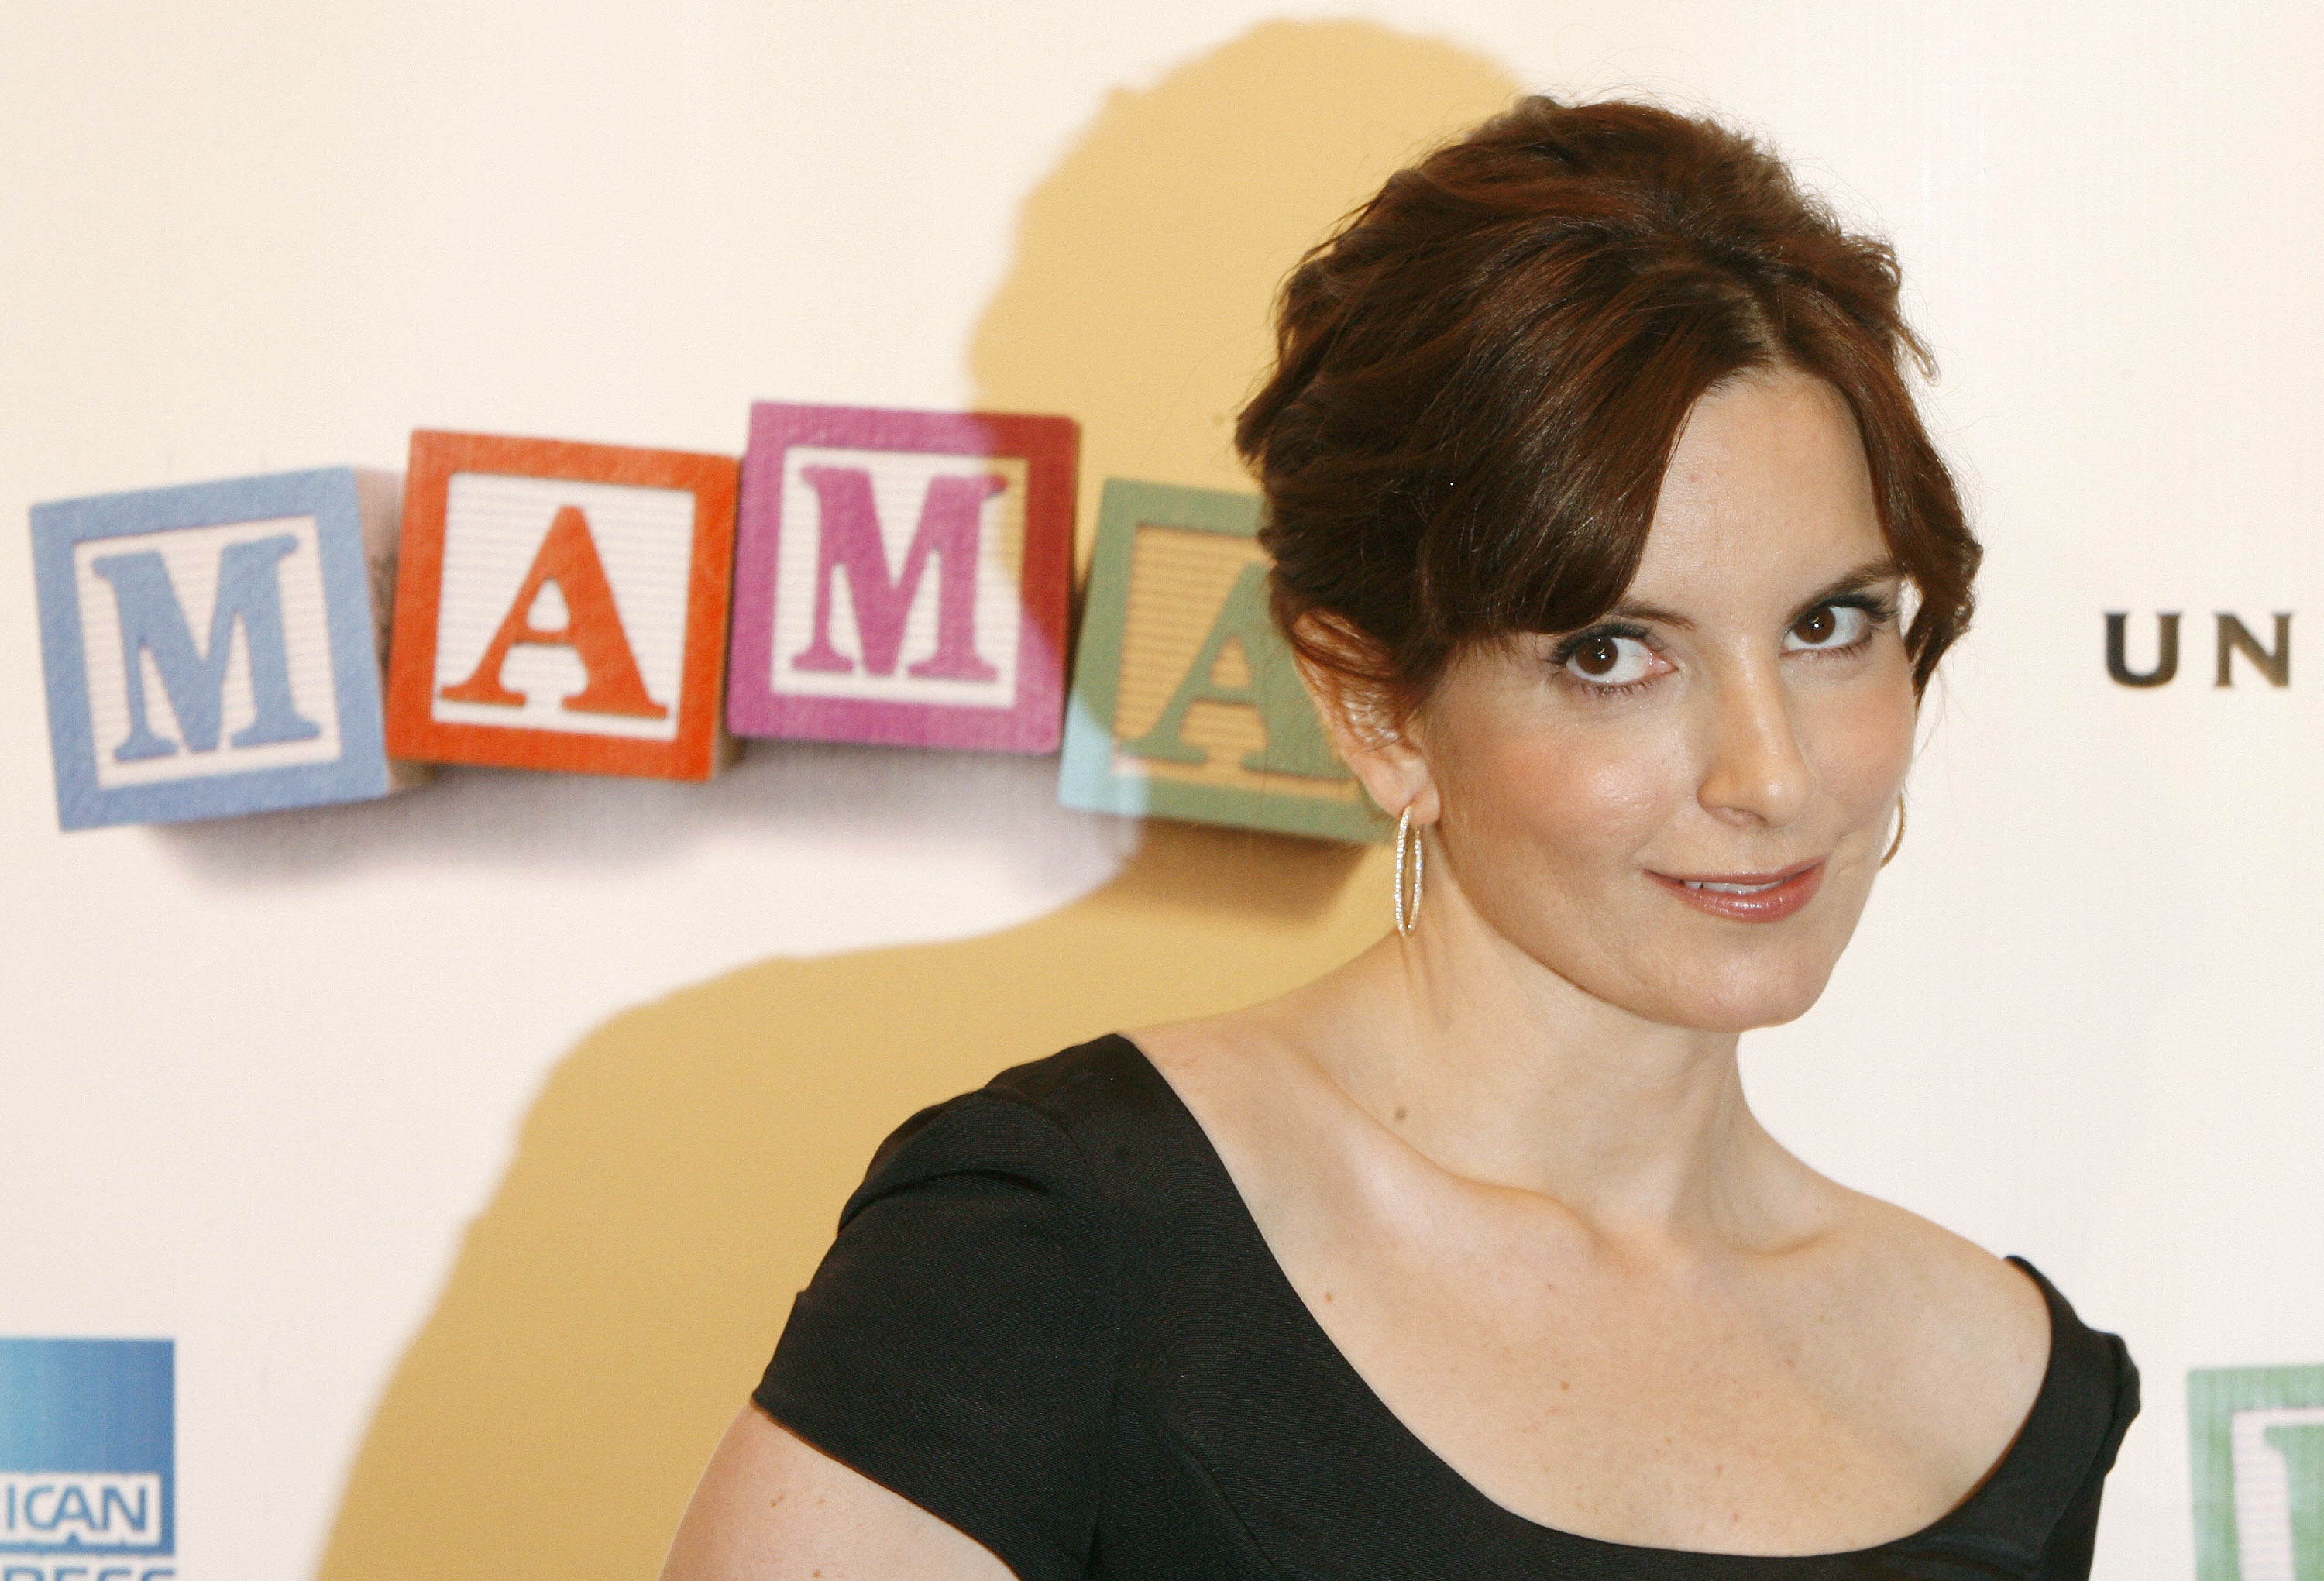 """Actress Tina Fey arrives for the premiere of """"Baby Mama,"""" the first film of the 2008 Tribeca Film Festival in New York April 23, 2008. REUTERS/Lucas Jackson (UNITED STATES) - RTR1ZTJN"""